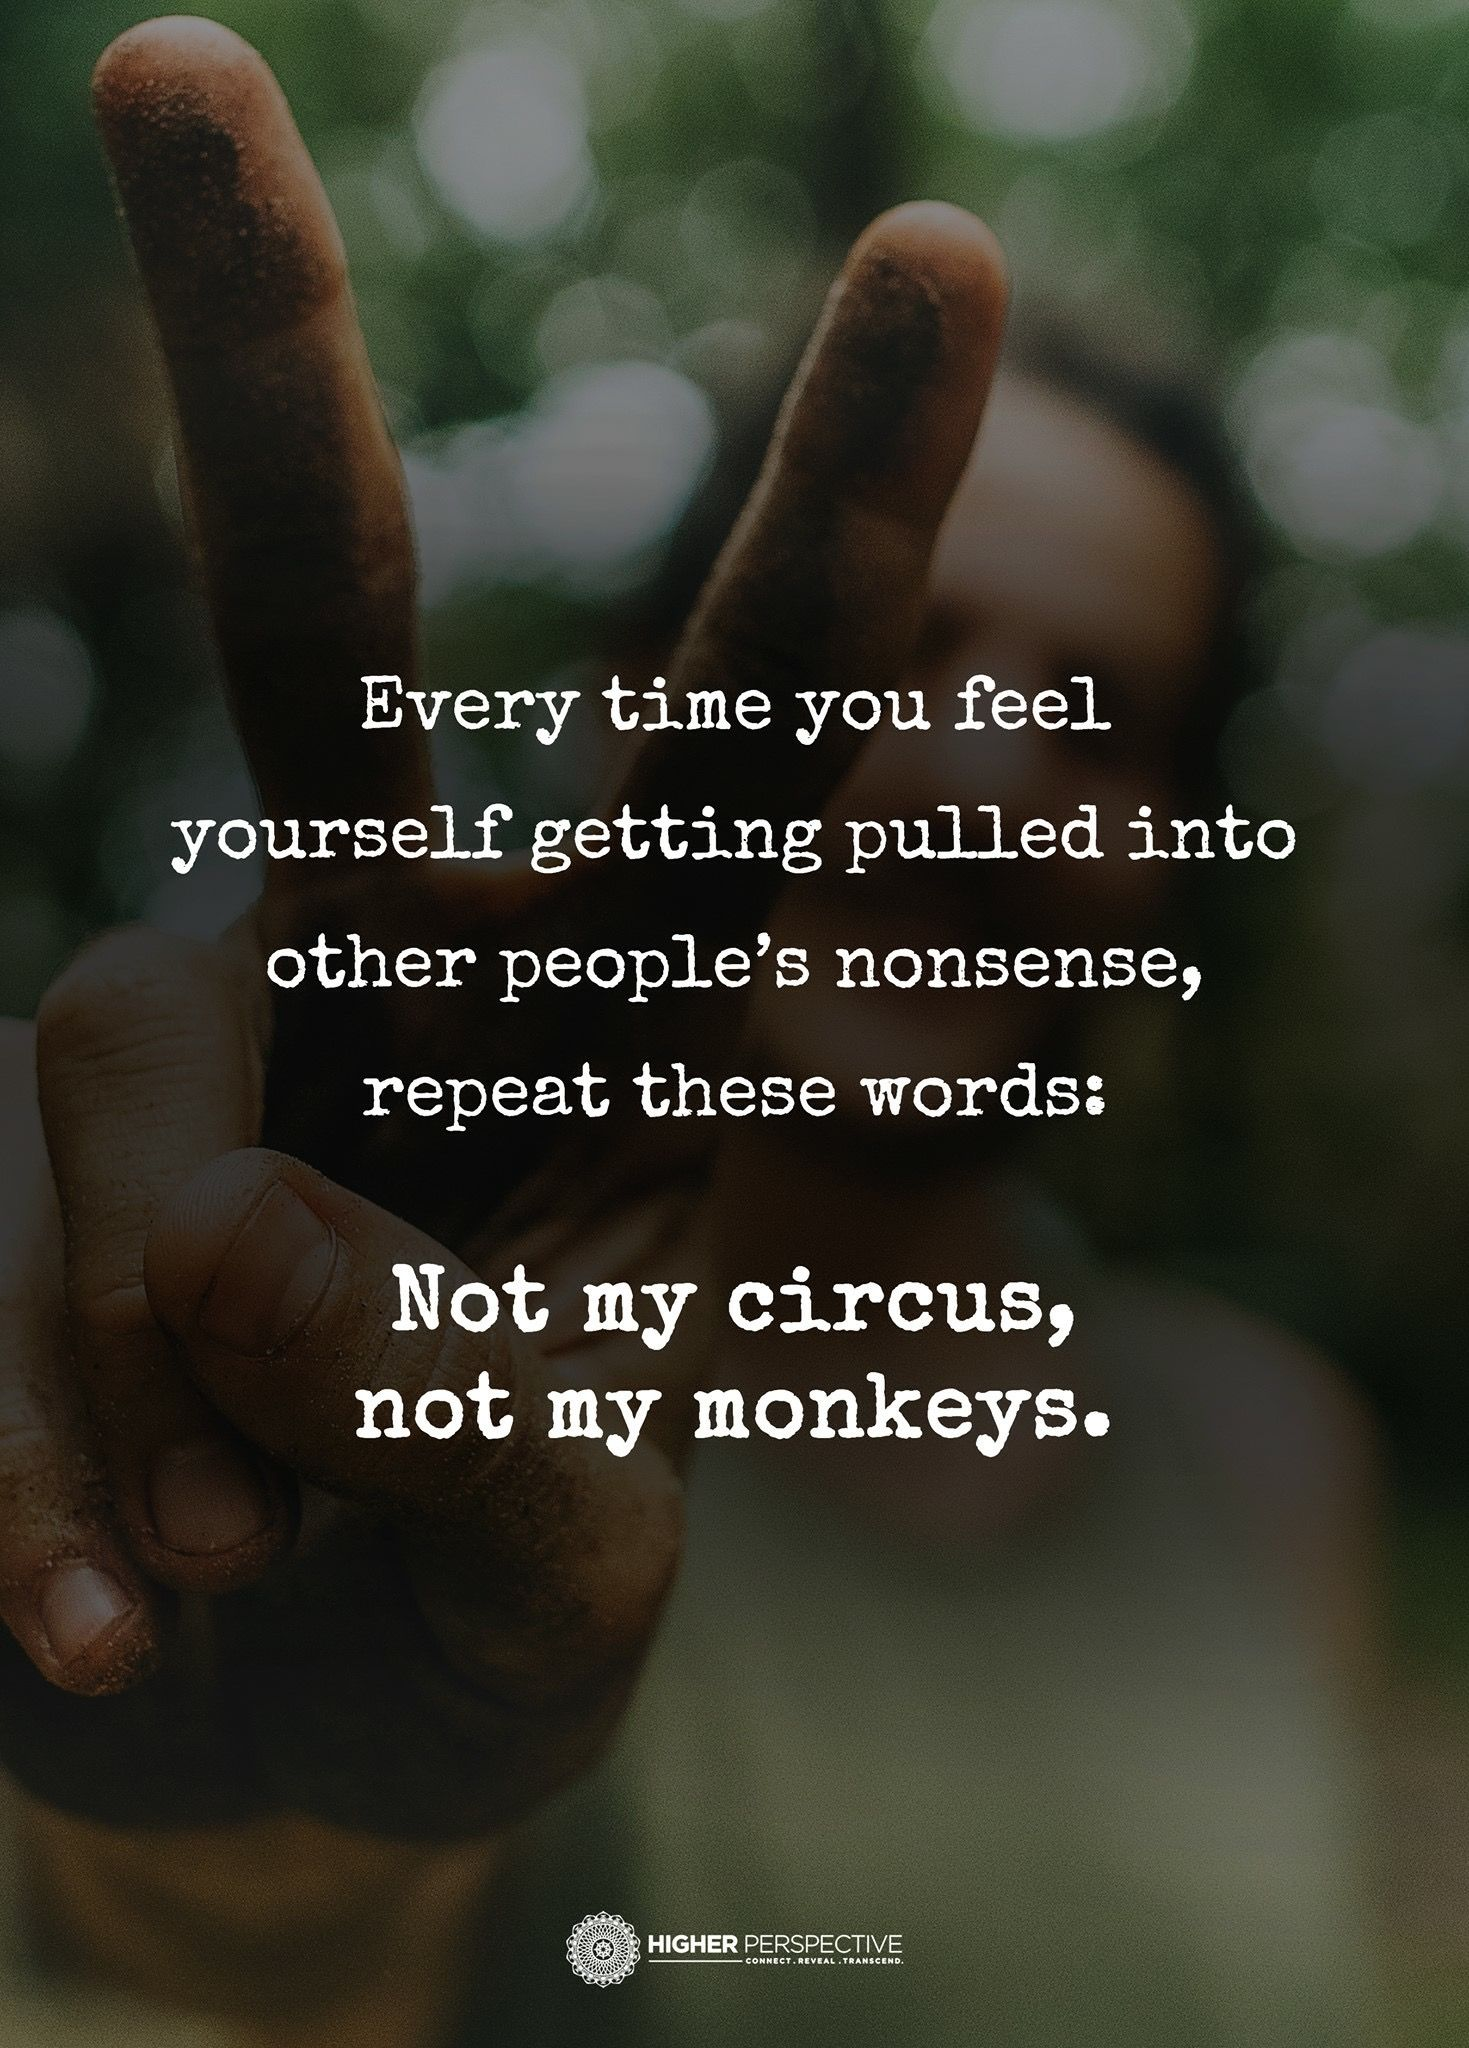 My Life Is Not Your Circus And I M Not Your Monkey So Kindly Stay Out Of My Business And Life Negativity Quotes True Quotes Be Yourself Quotes